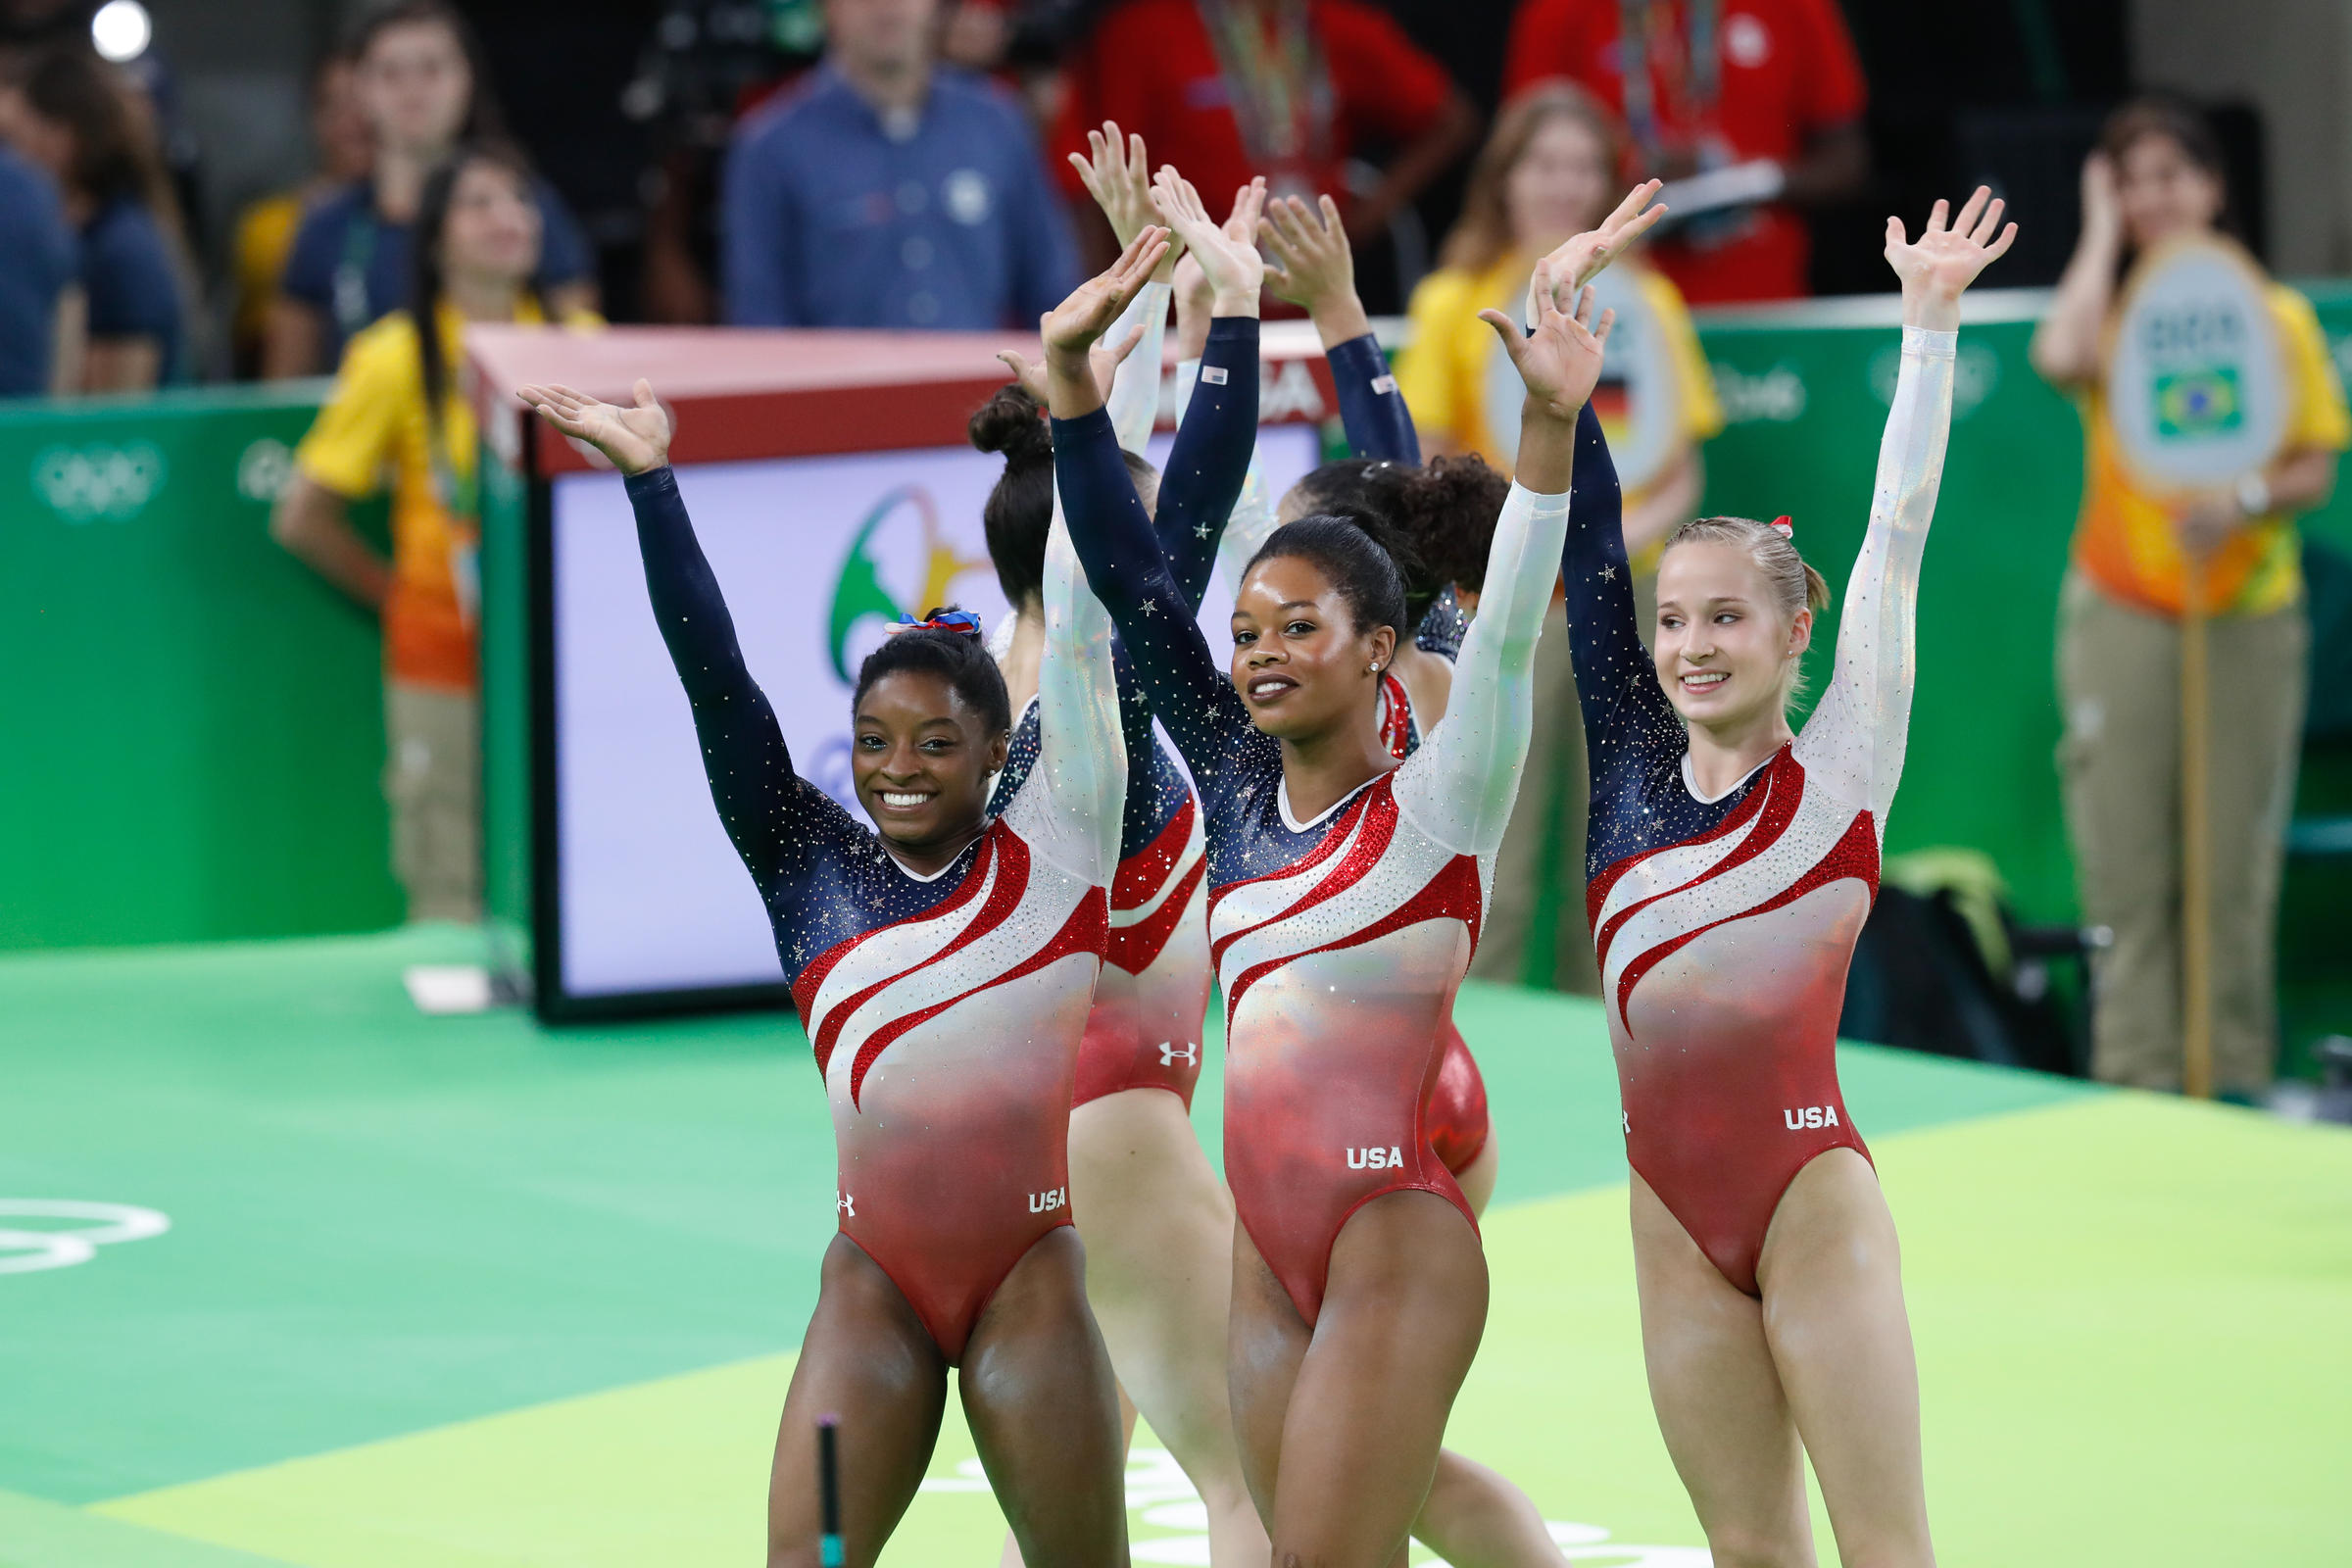 Board of USA Gymnastics to resign amid sex abuse scandal